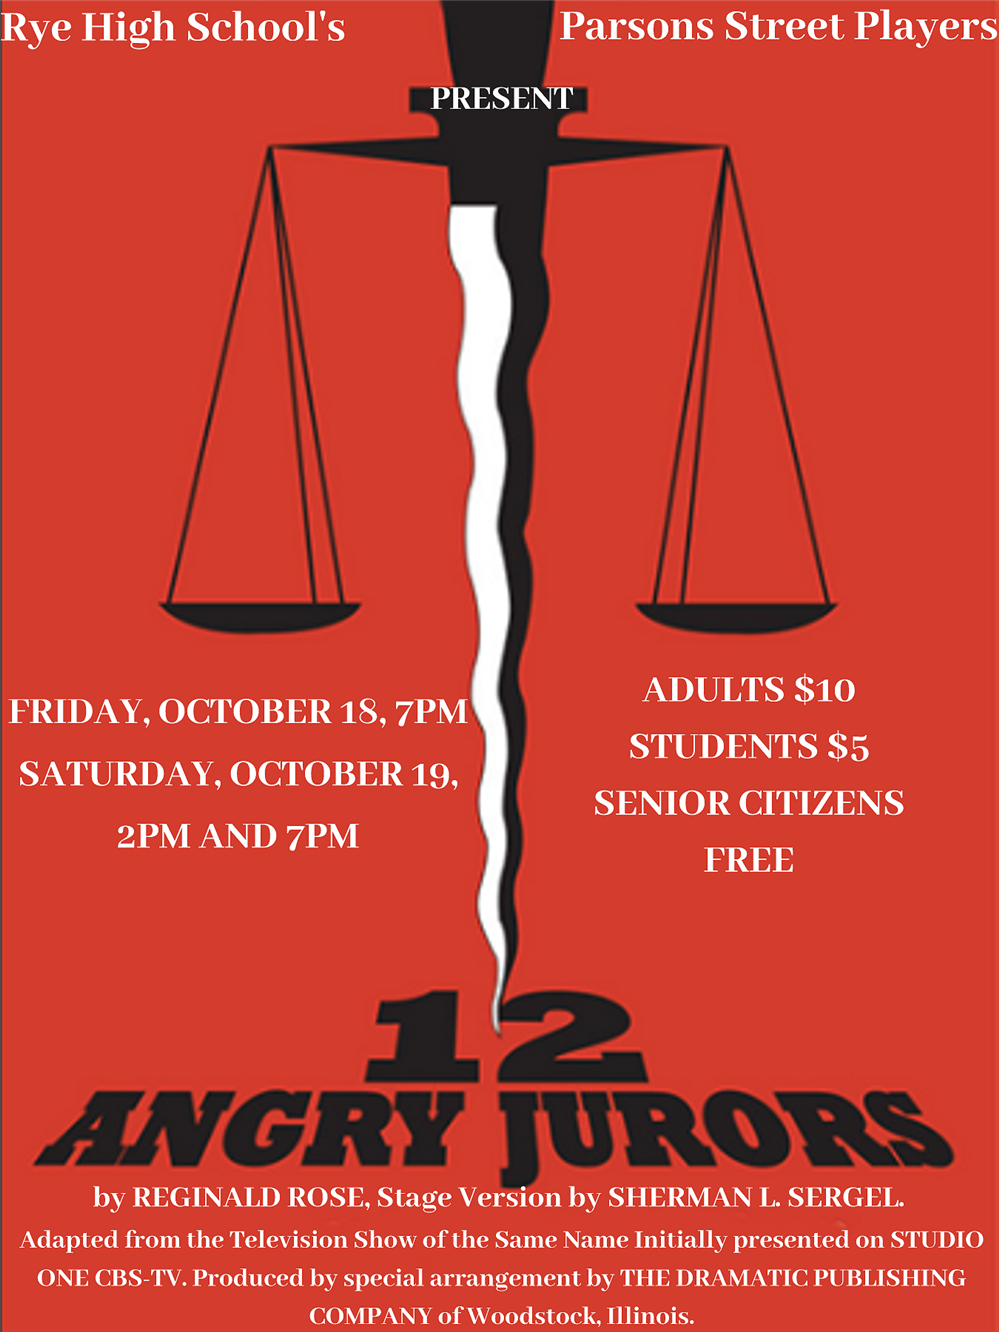 "The Rye High School Parsons Street Players Present ""12 Angry Jurors"""